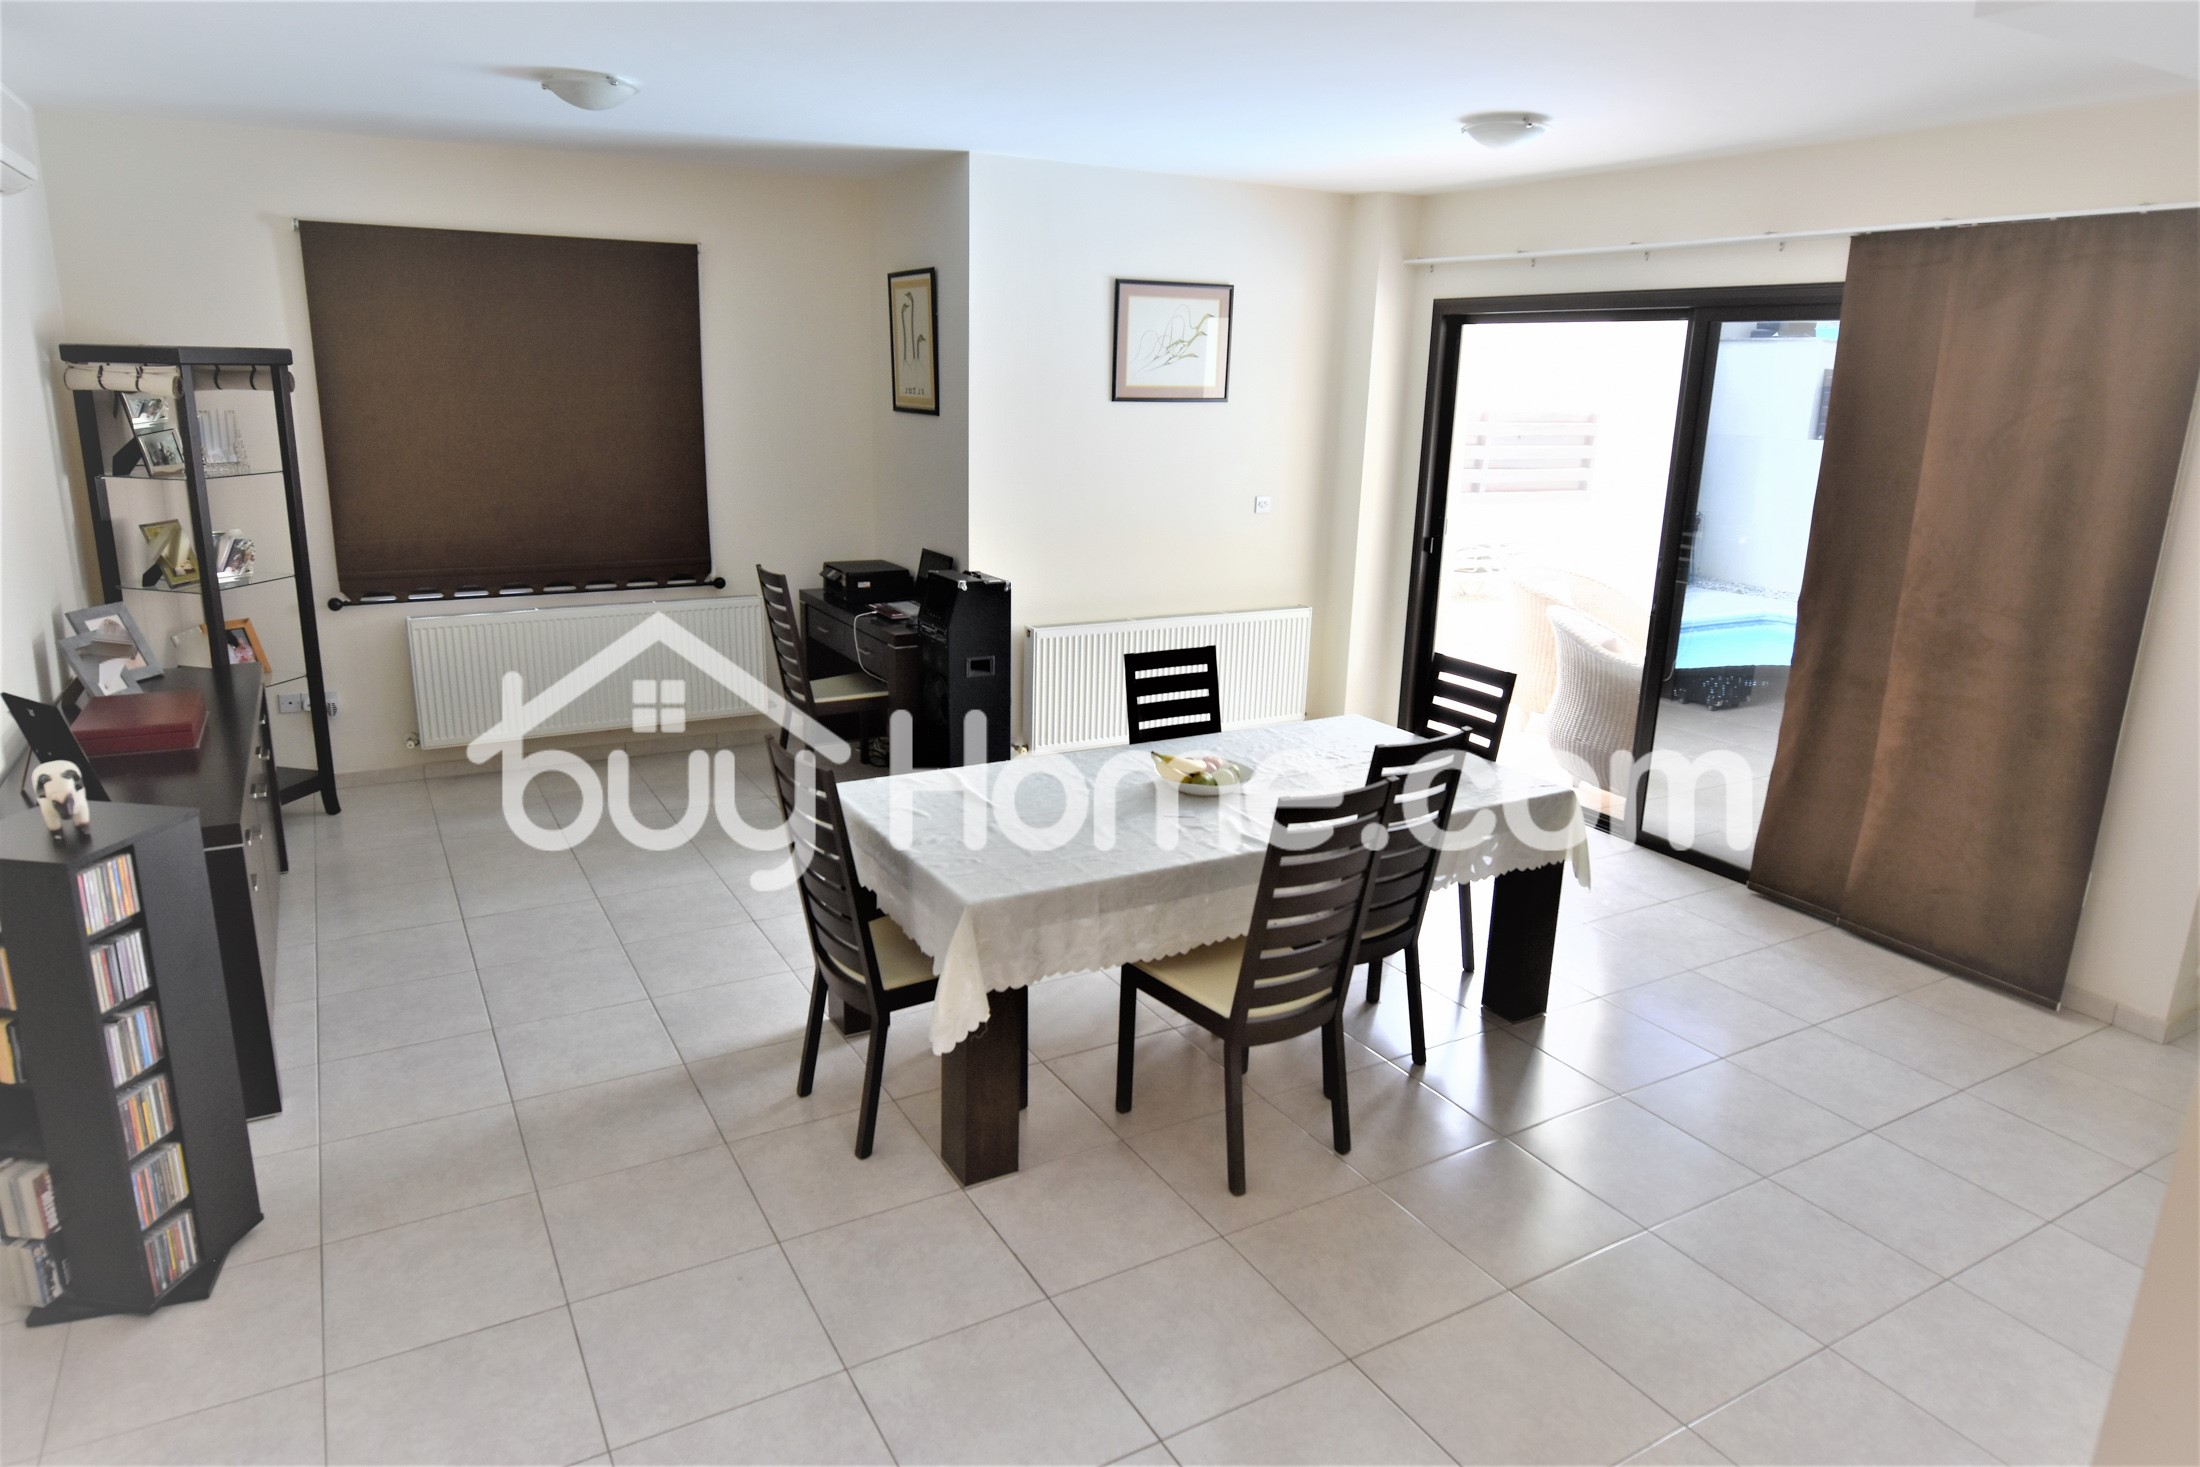 3 Bedroom House With A Pool   BuyHome